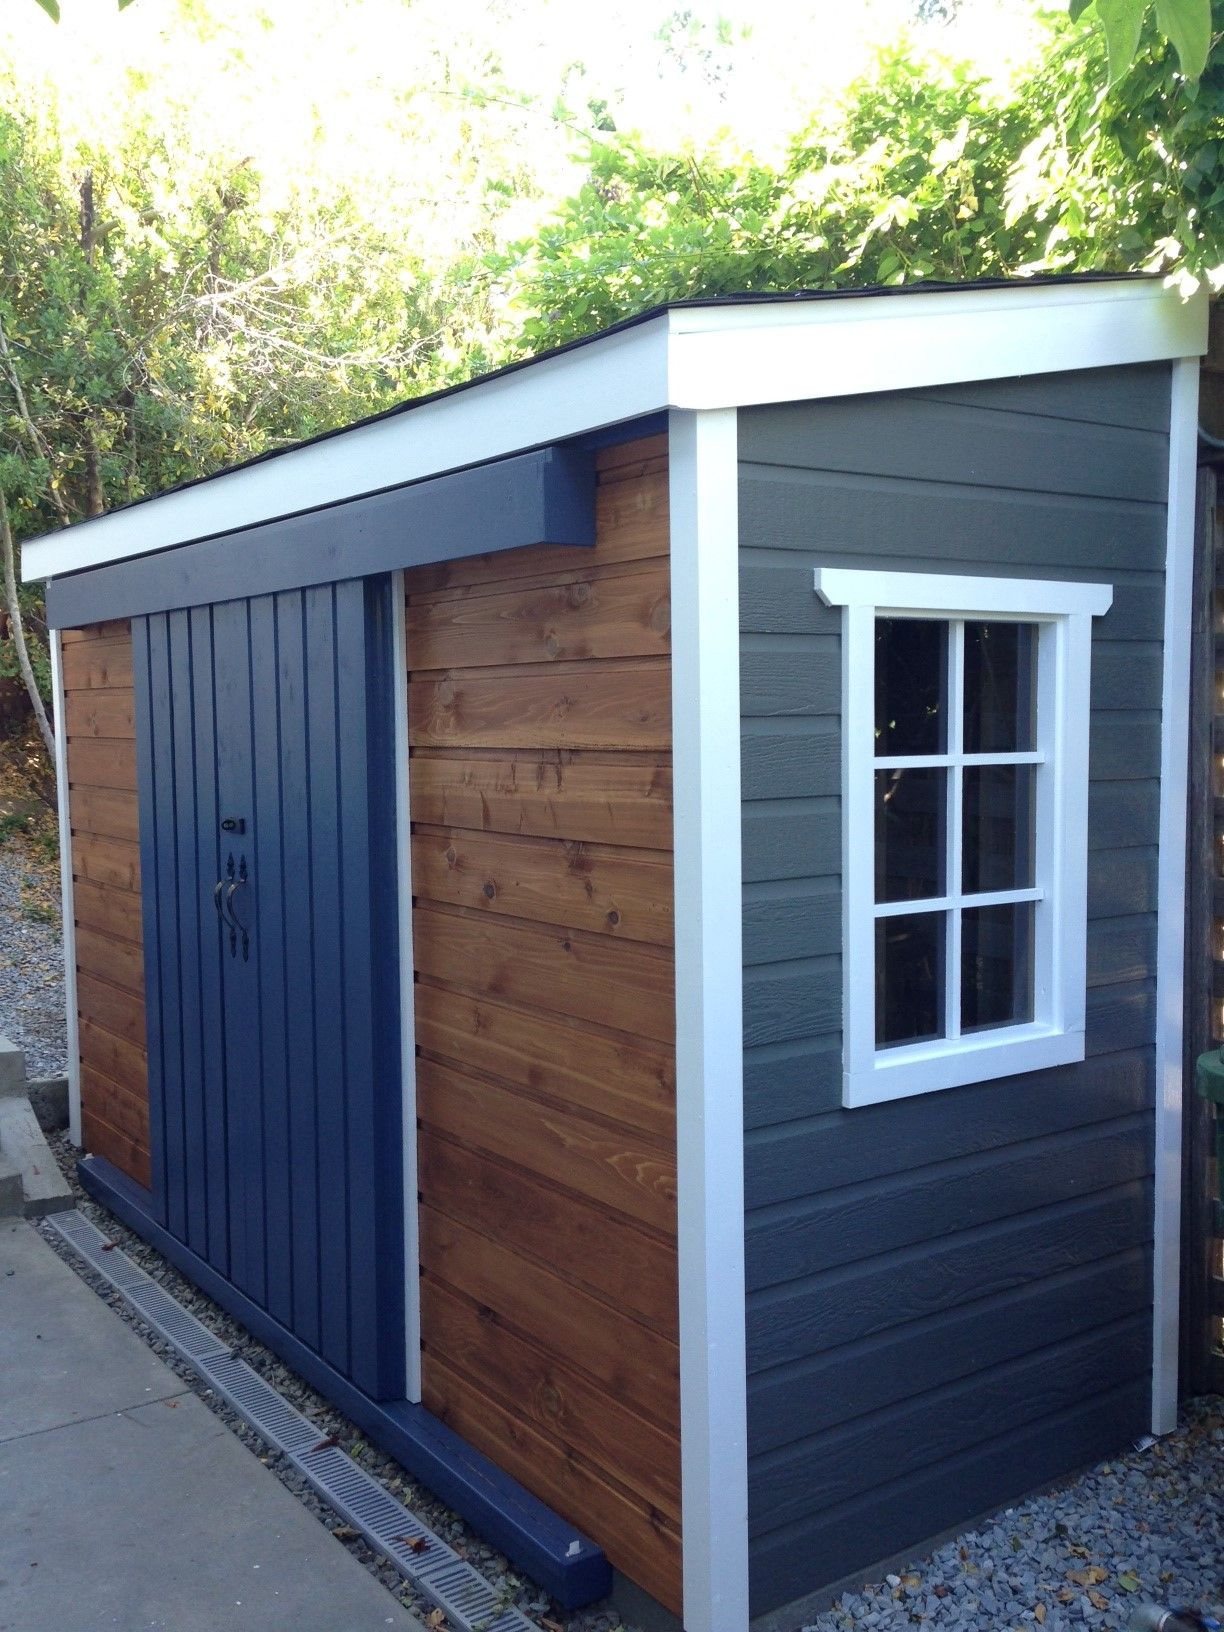 sheds shed p storage ft outdoor x plastic tans browns keter factor